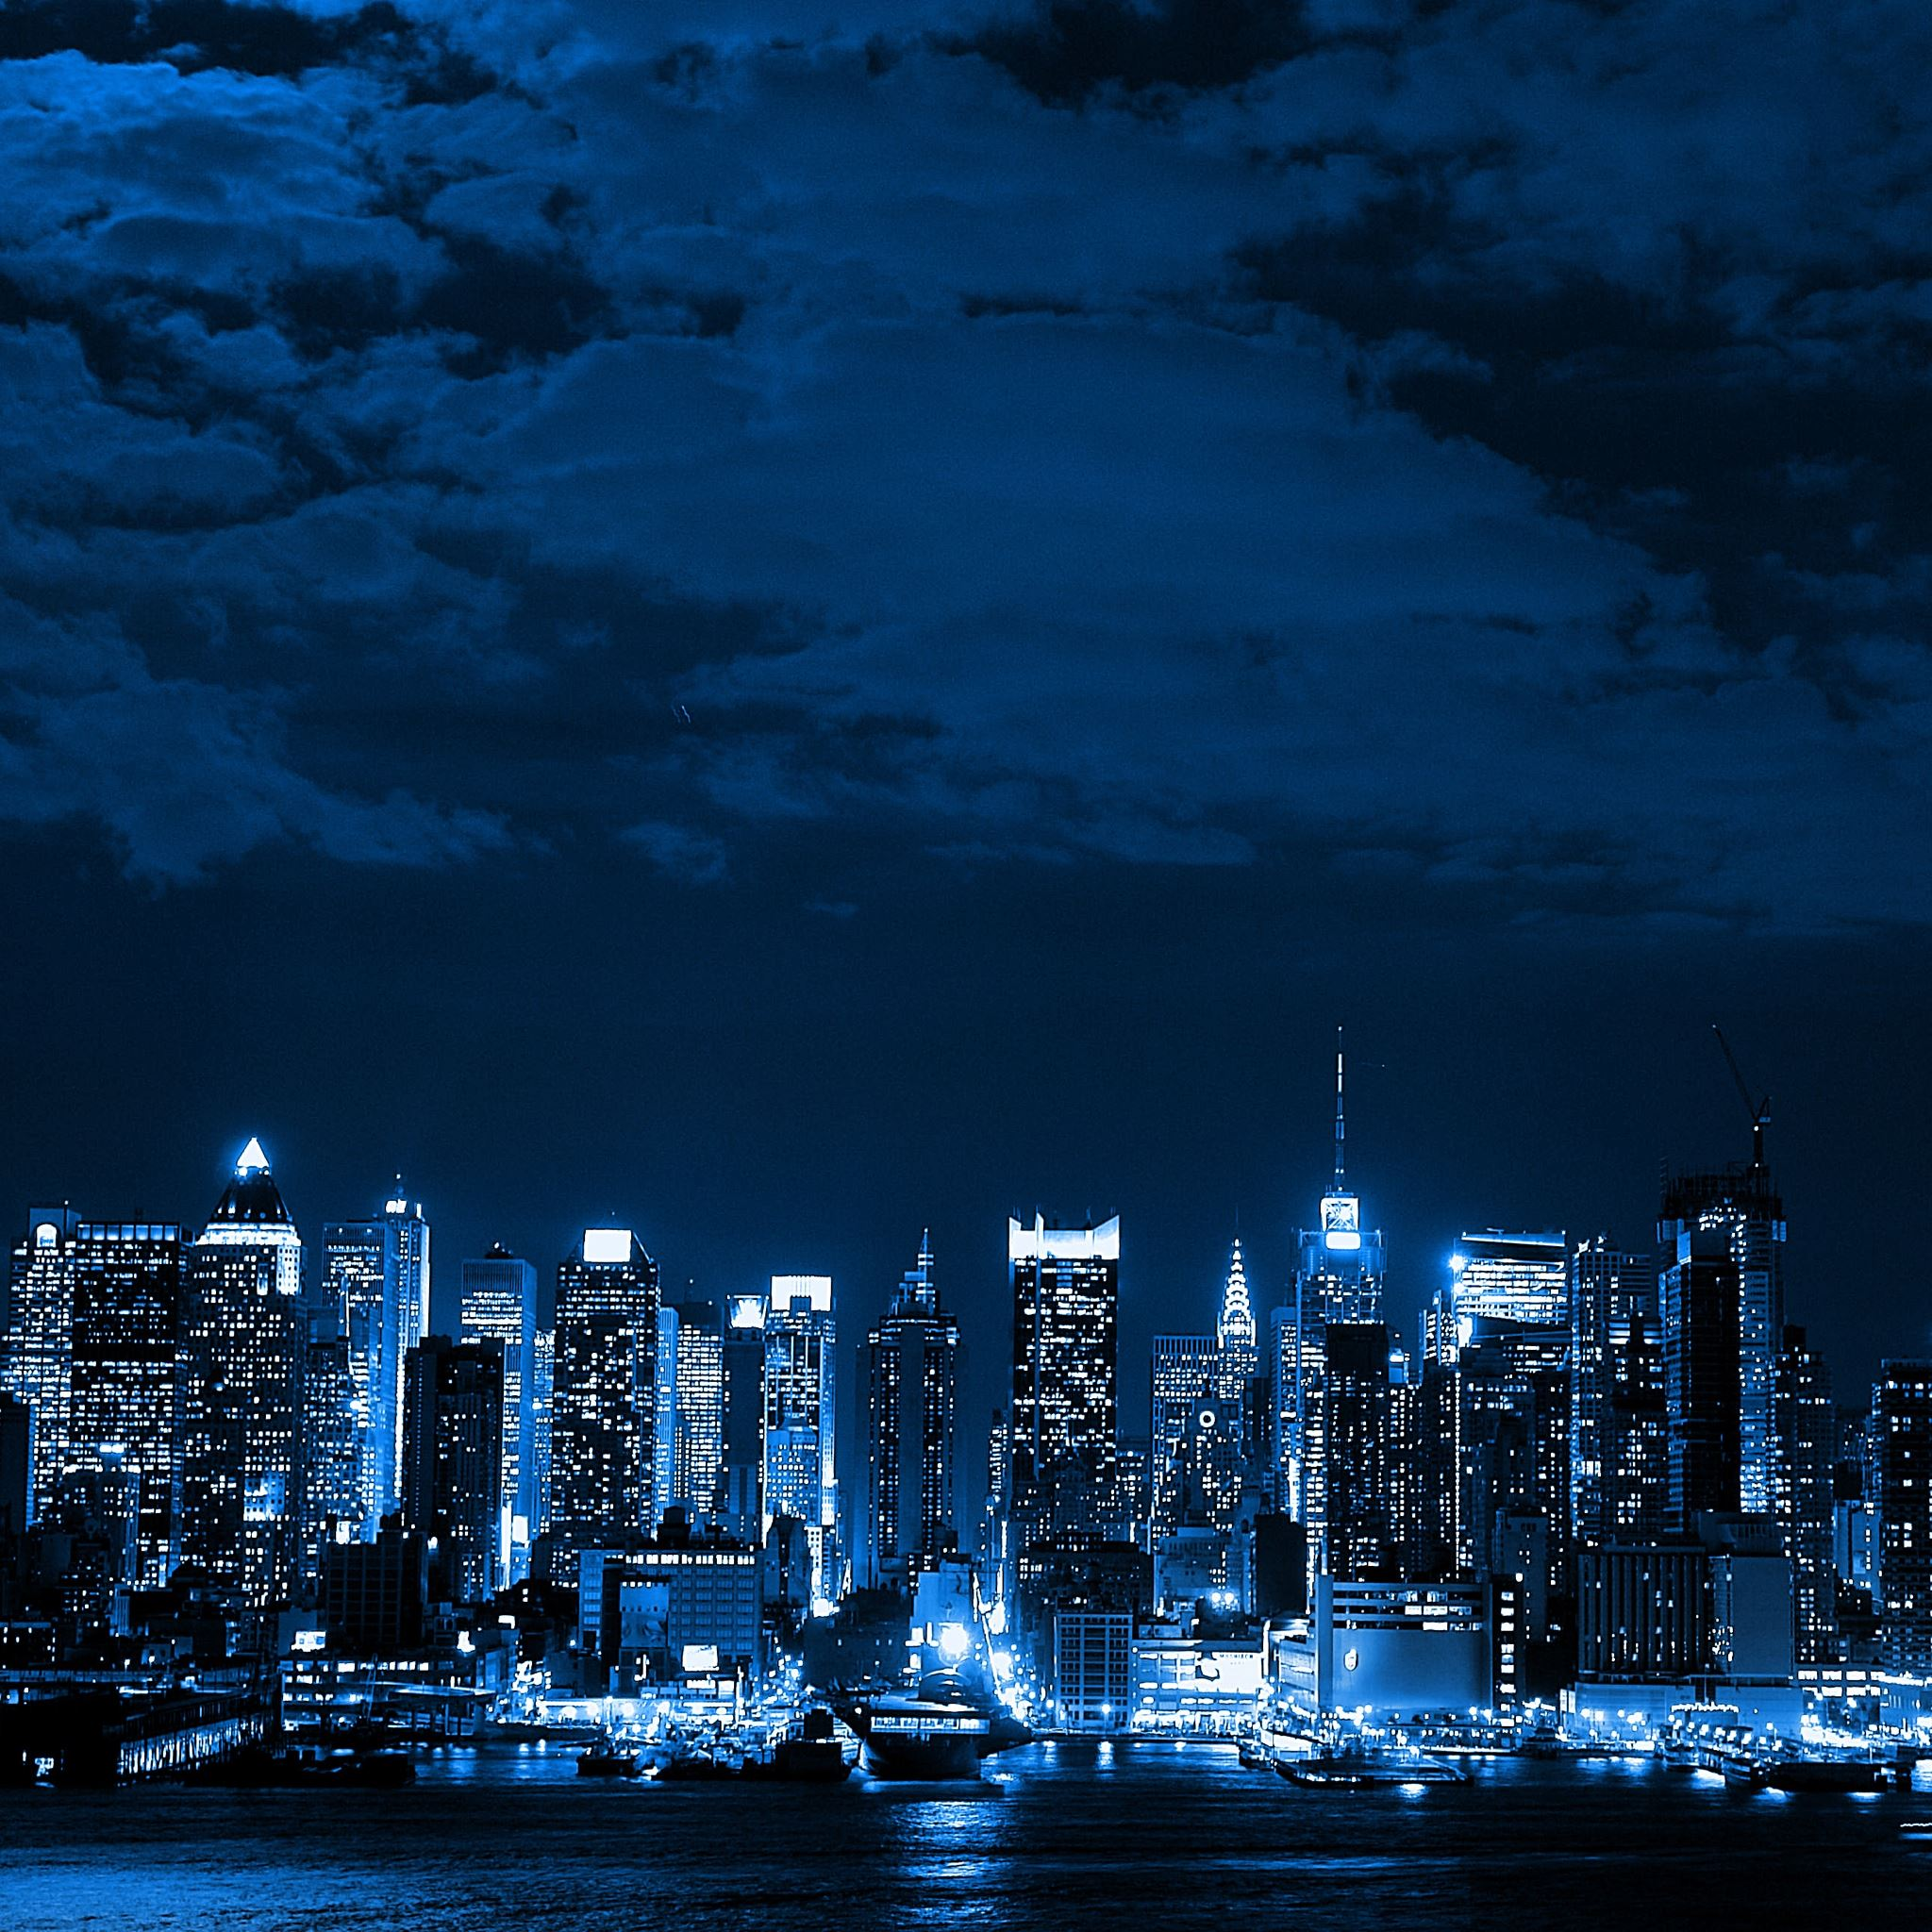 Blue City iPad Air wallpaper